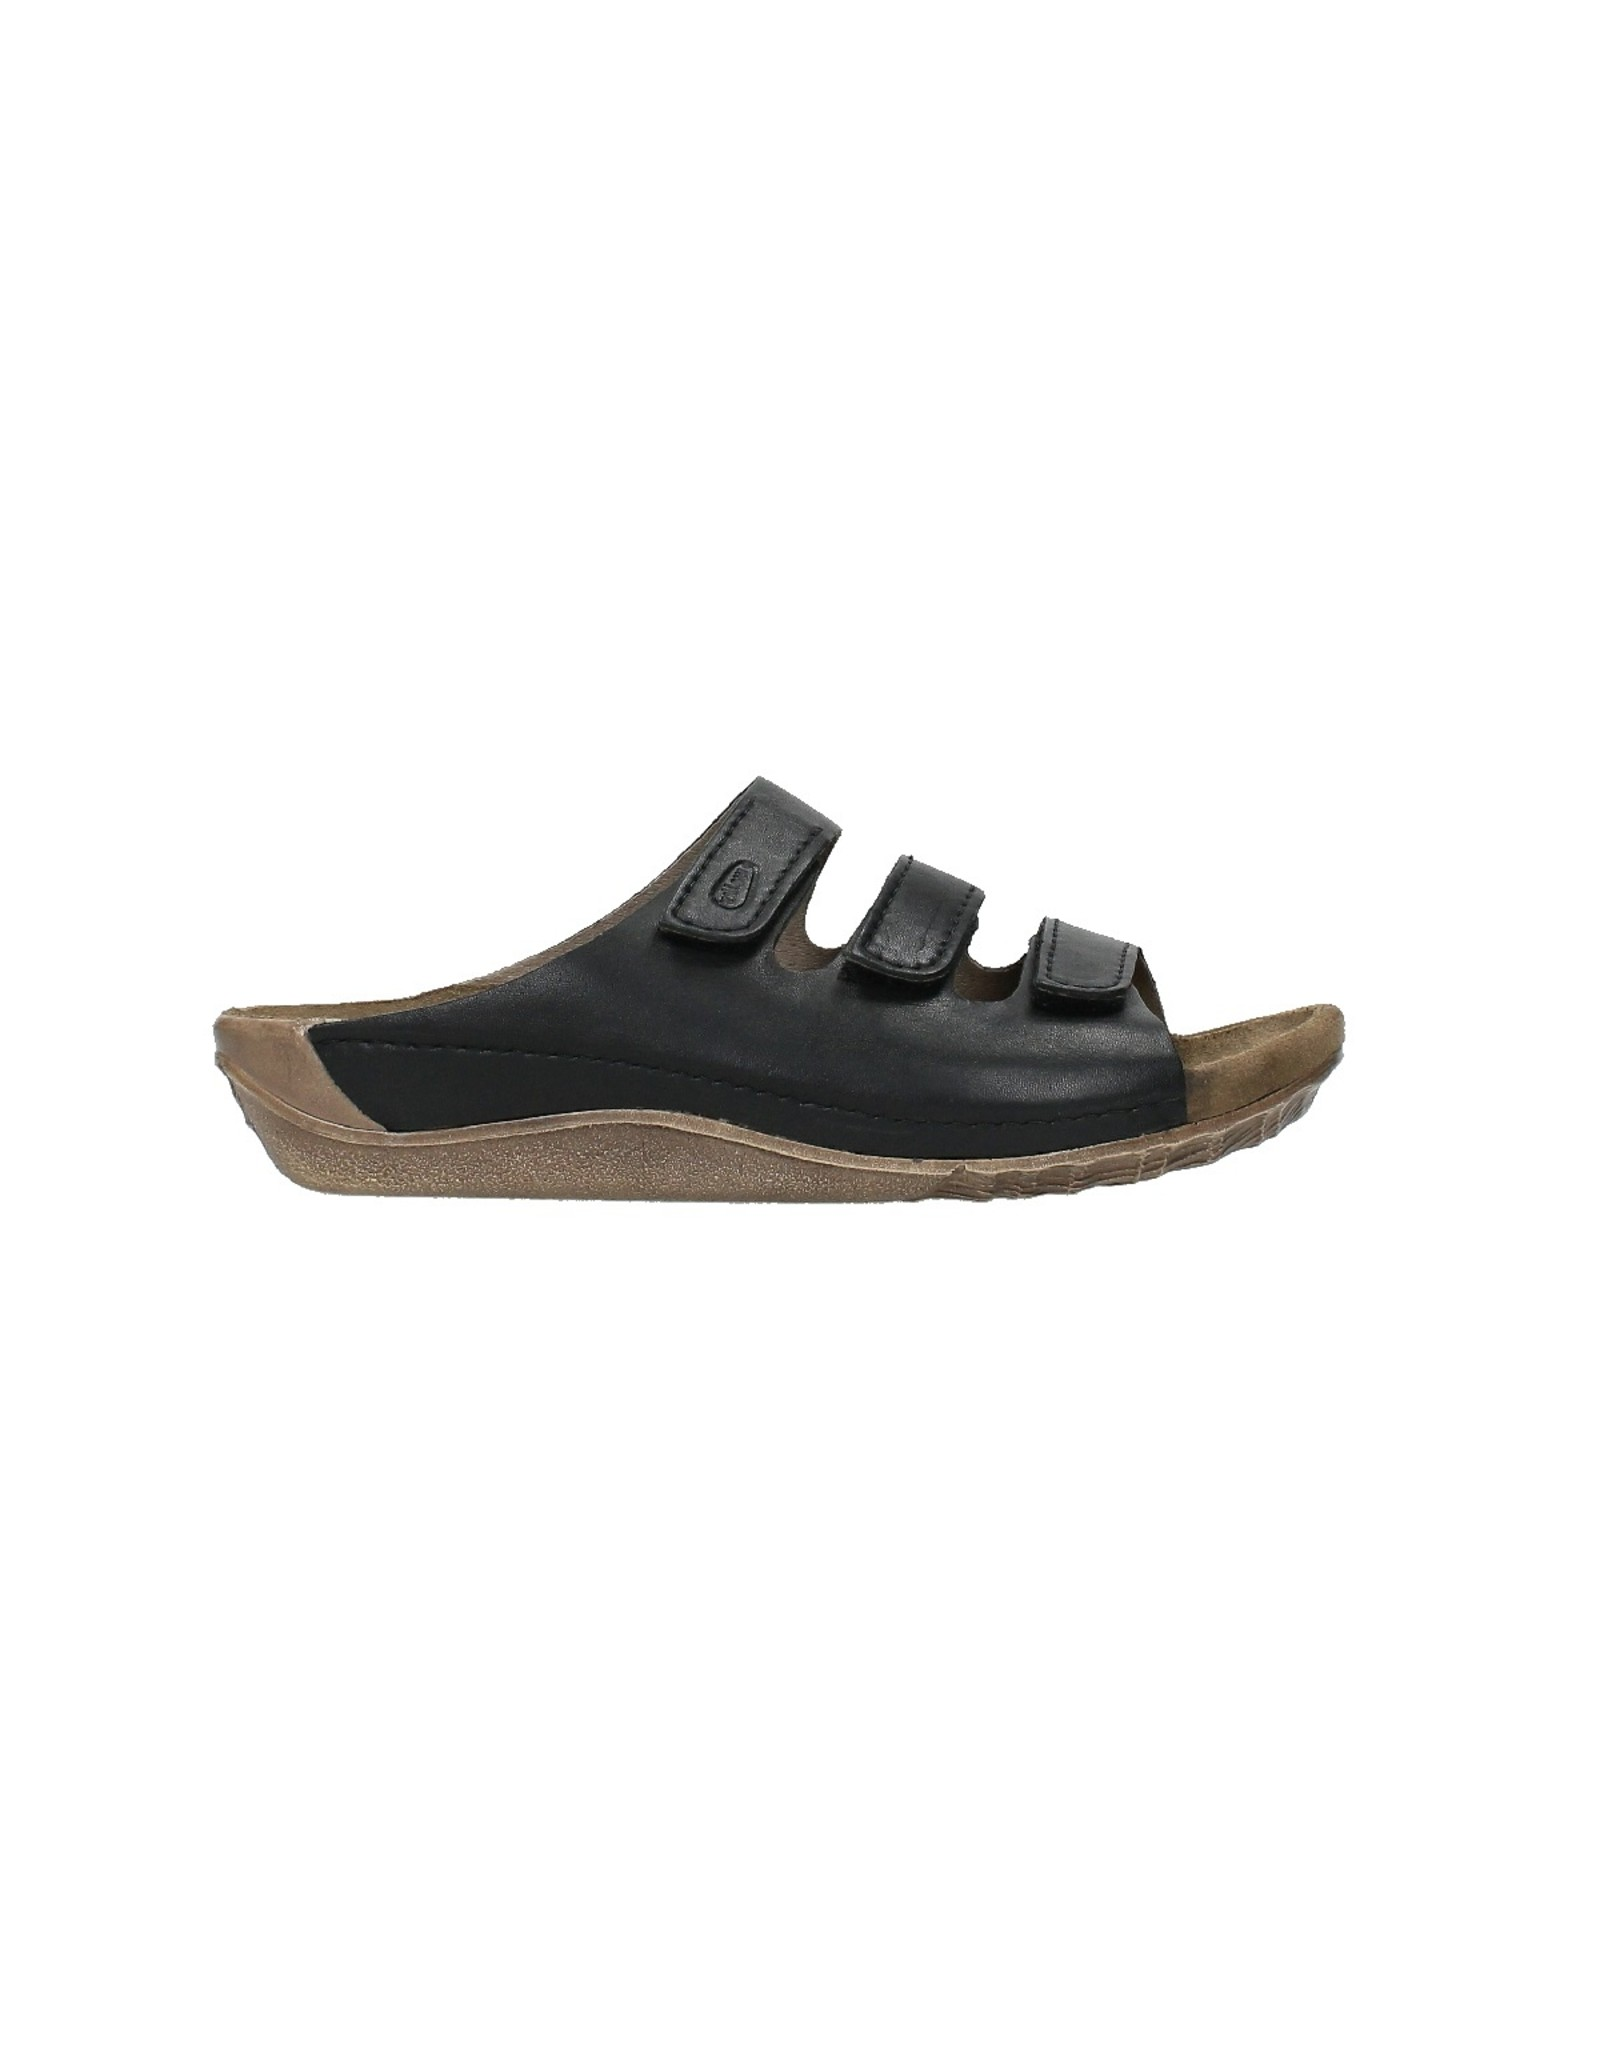 WOLKY WOMEN'S NOMAD-BLACK